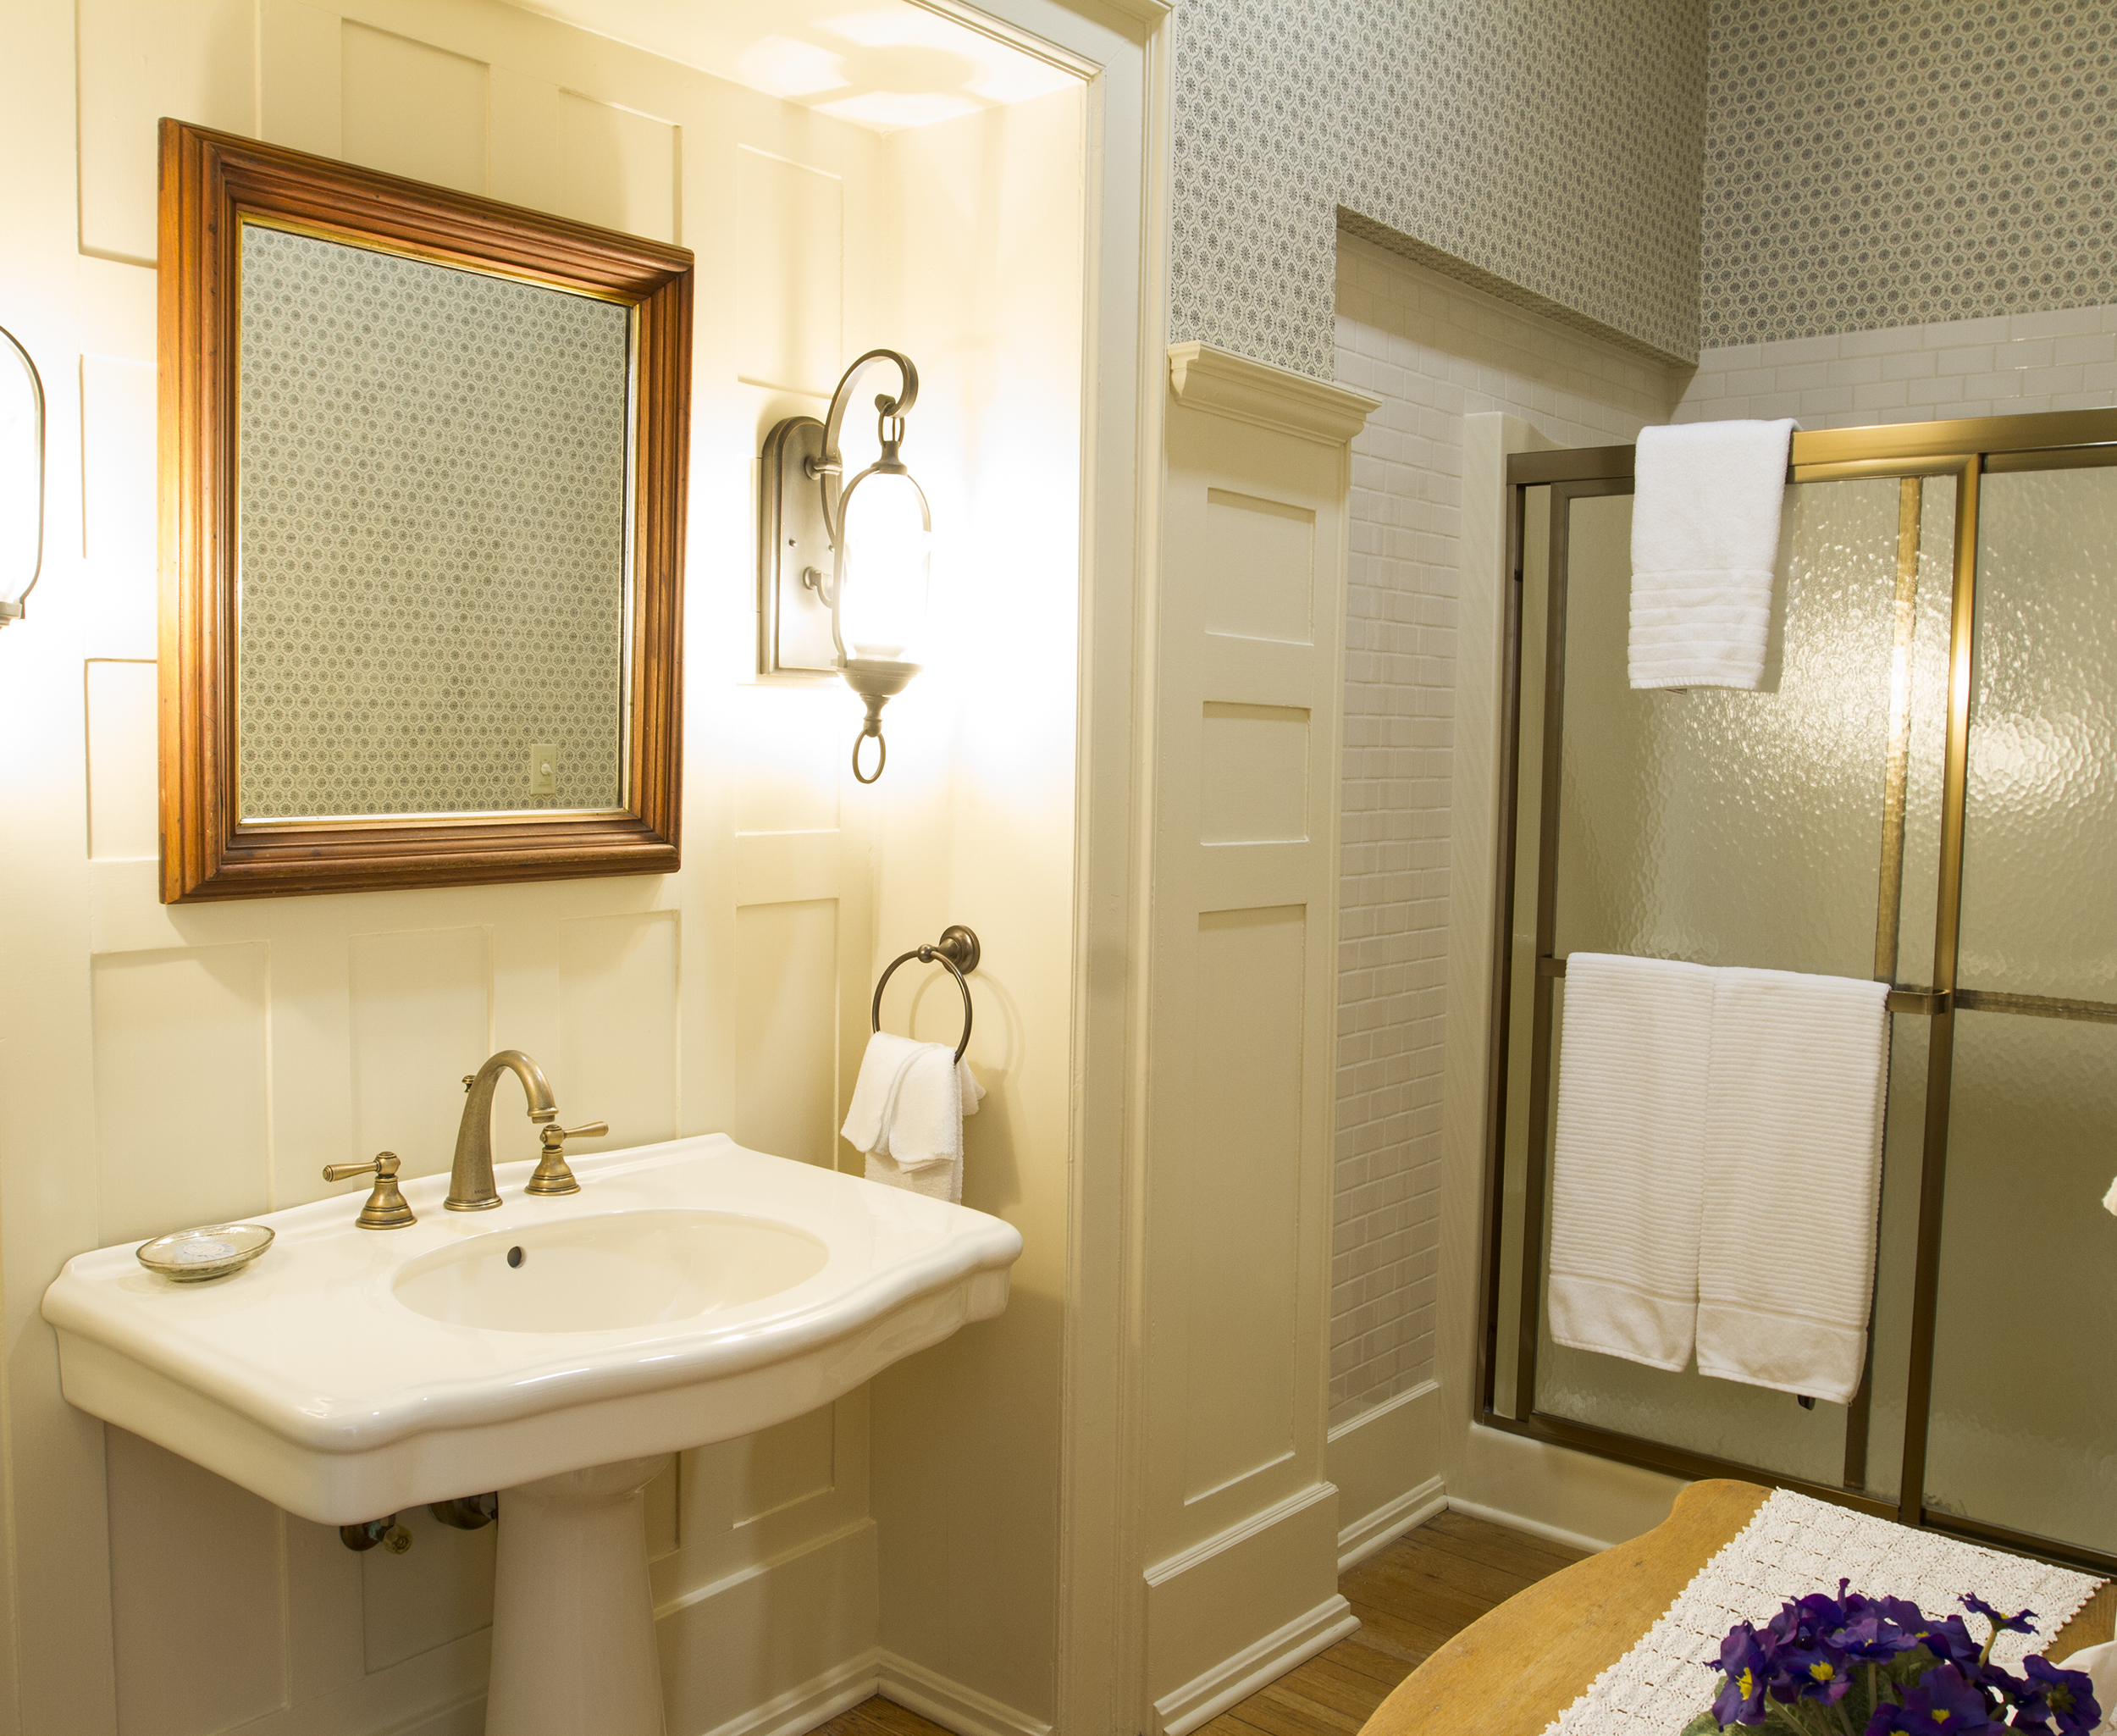 Spacious bathroom with updated fixtures